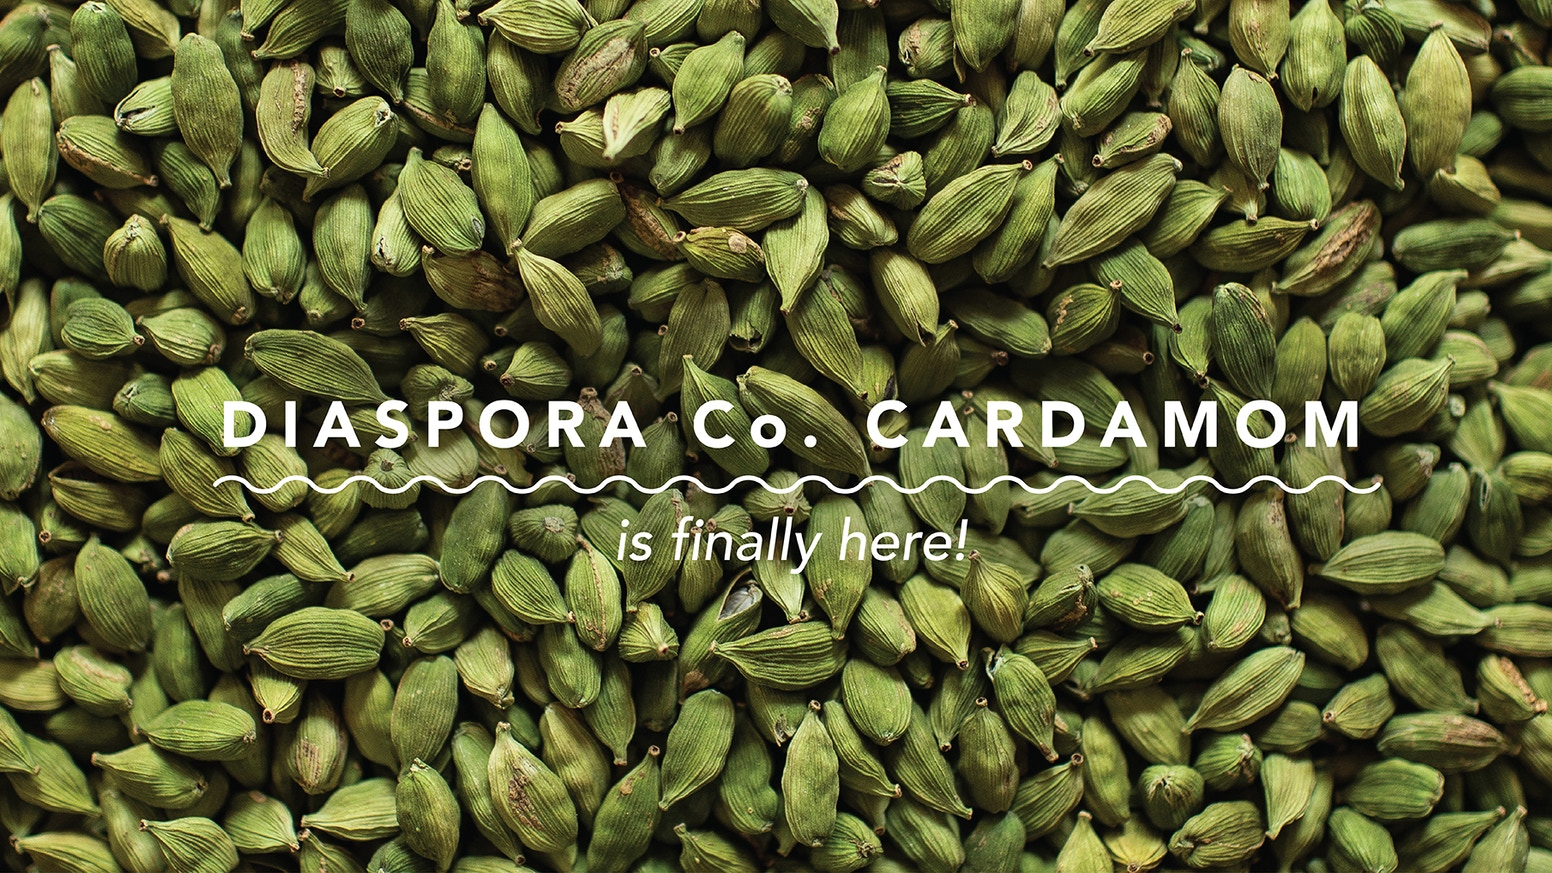 Potent, fruity, with a heady aroma— Diaspora Co. Cardamom is finally here!